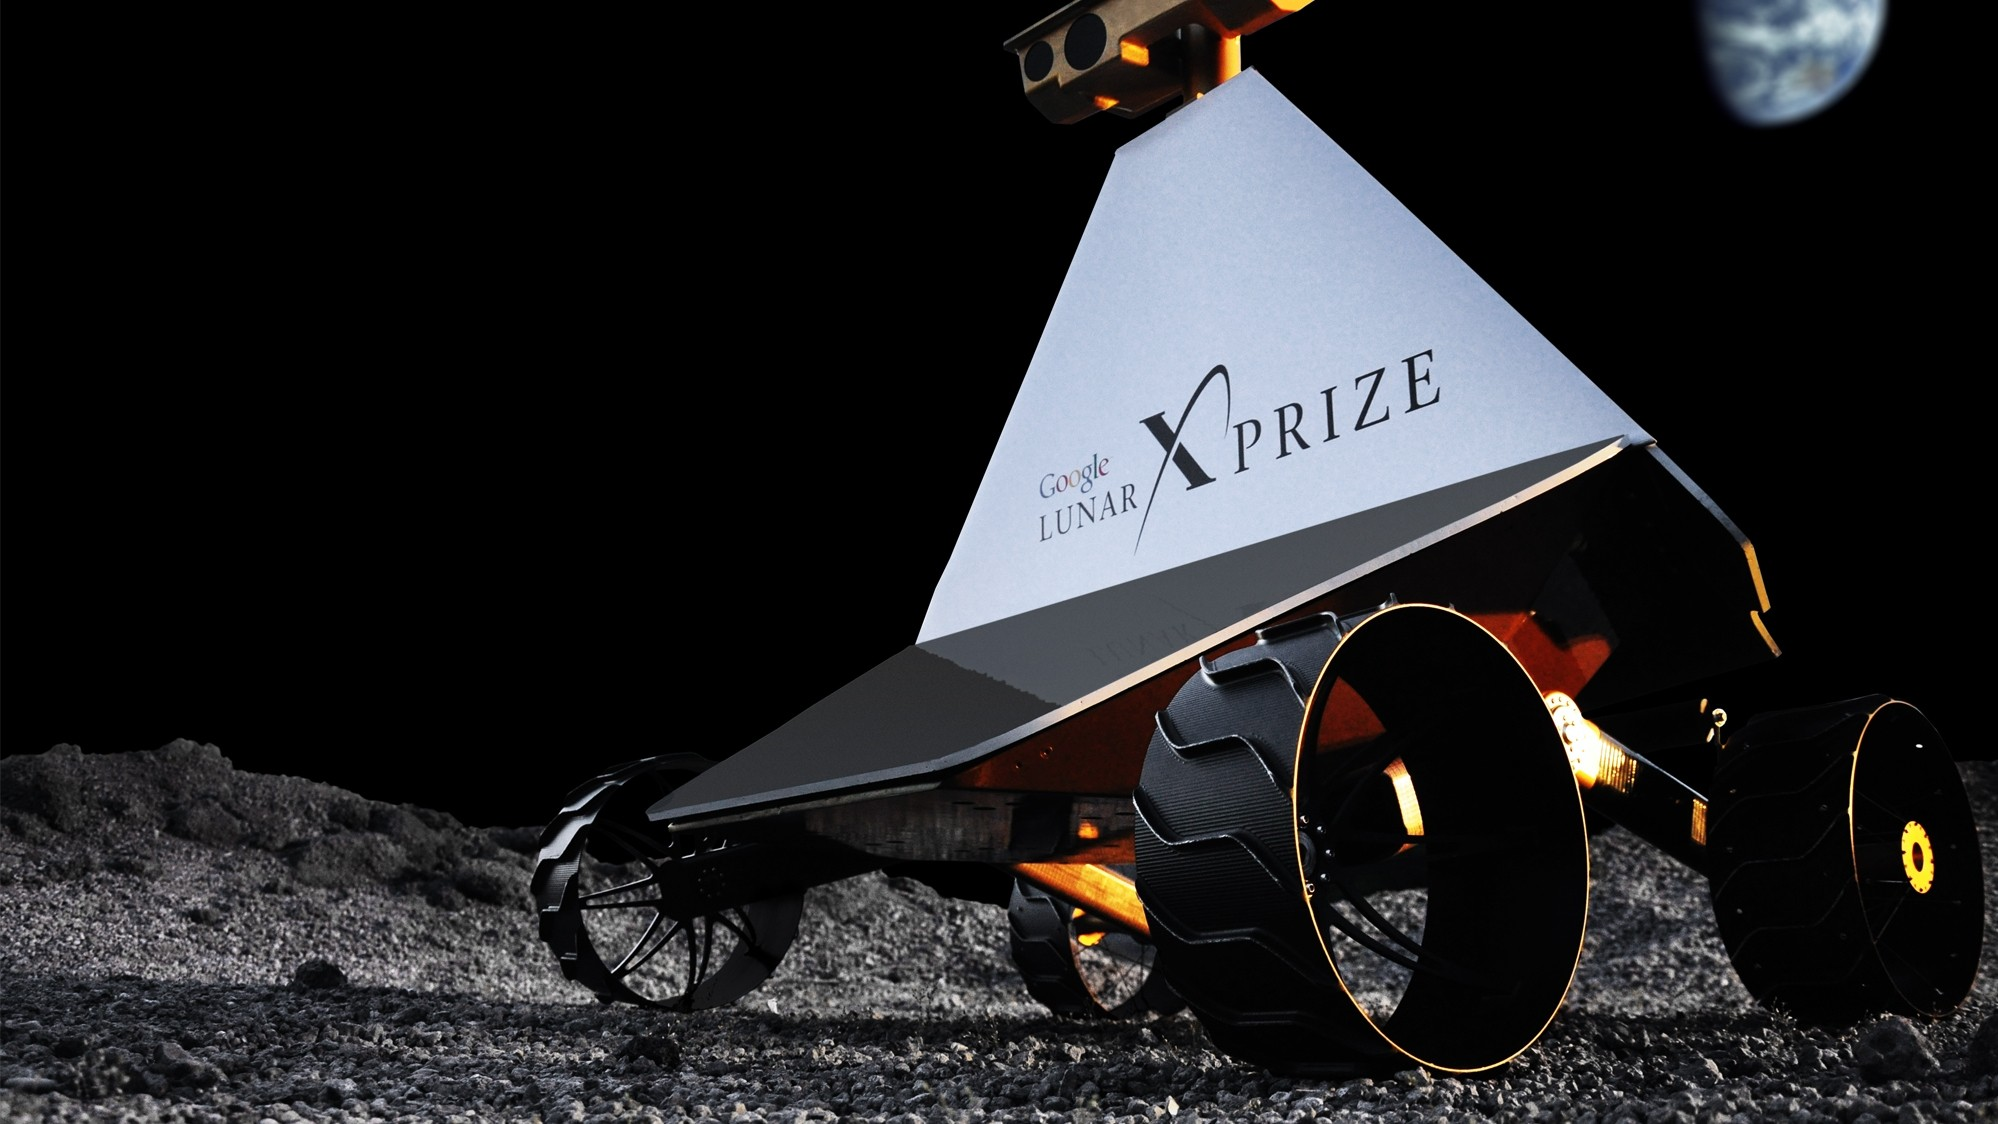 Google's Moon-Landing Competition Is Getting Its Own Reality Show